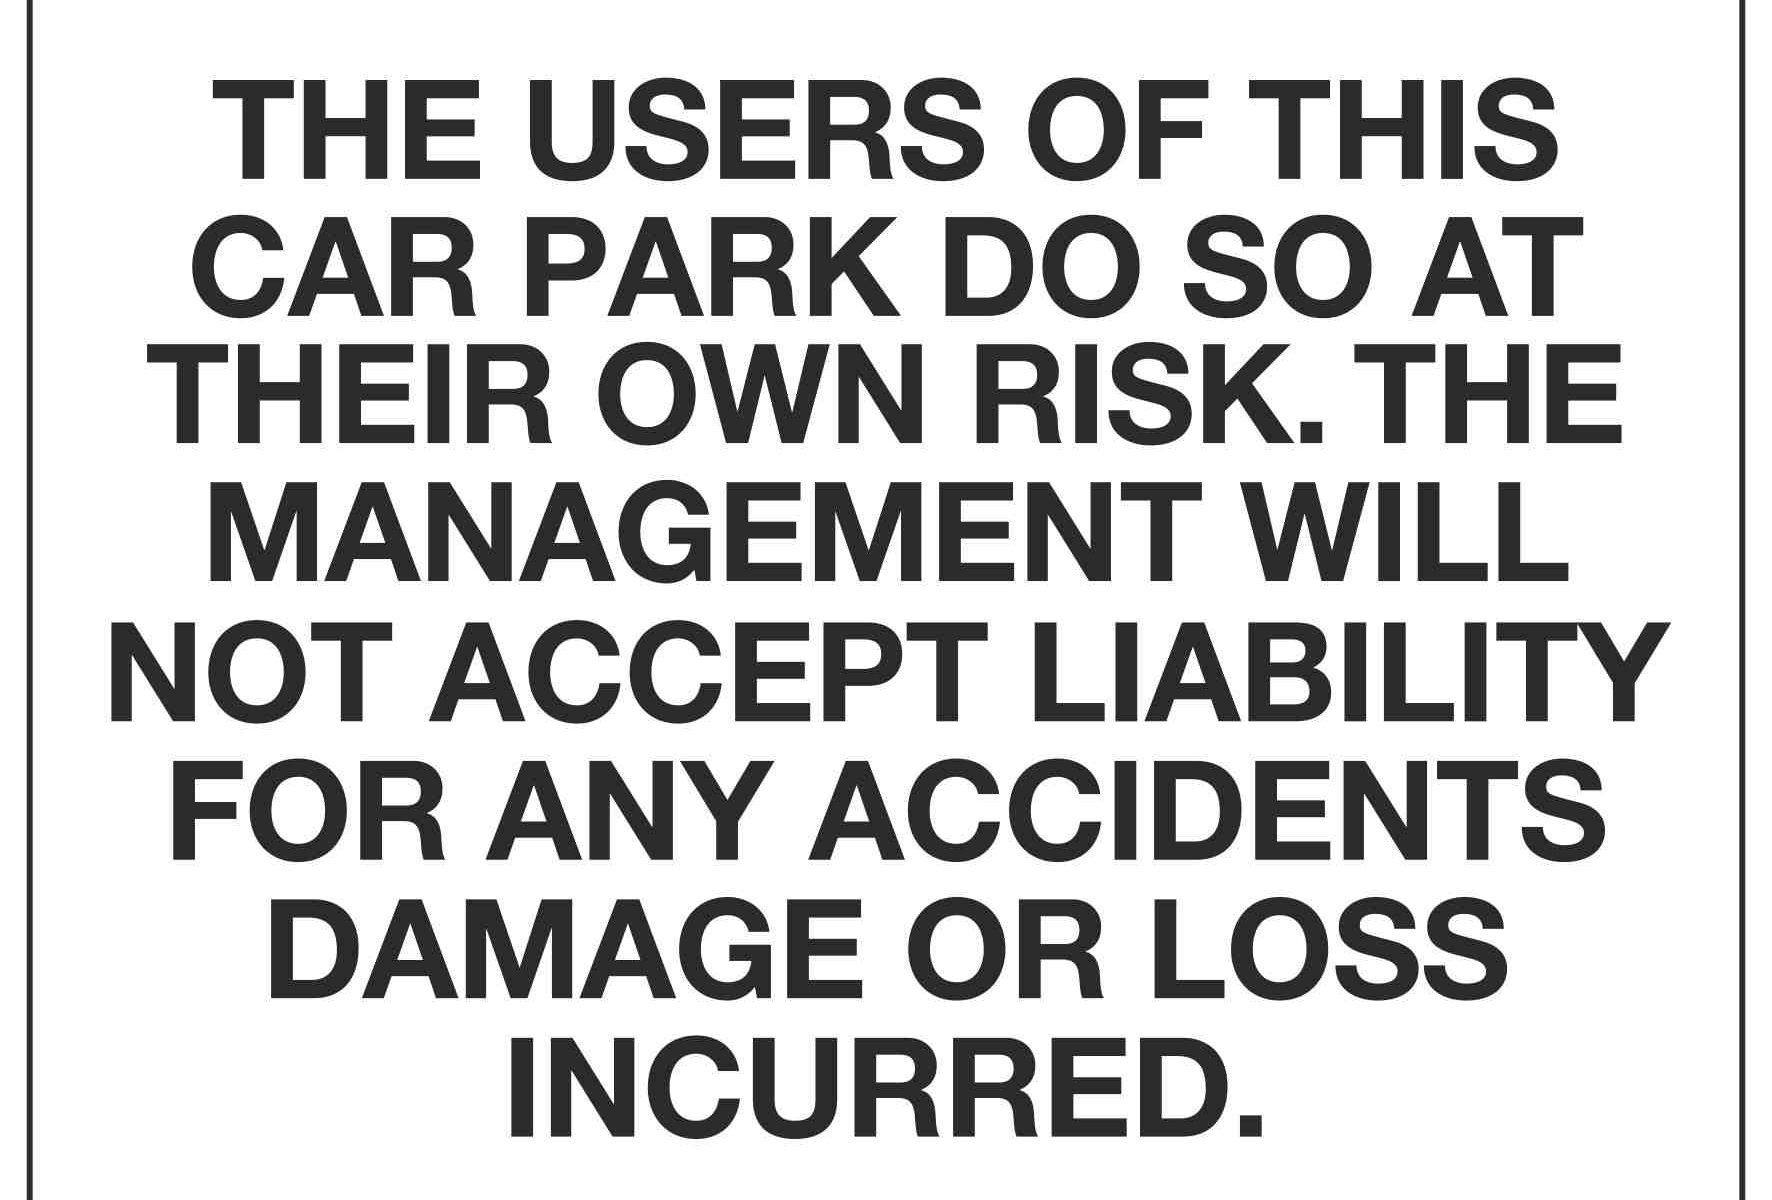 THE USERS OF THIS CAR PARK DO SO AT THEIR OWN RISK.